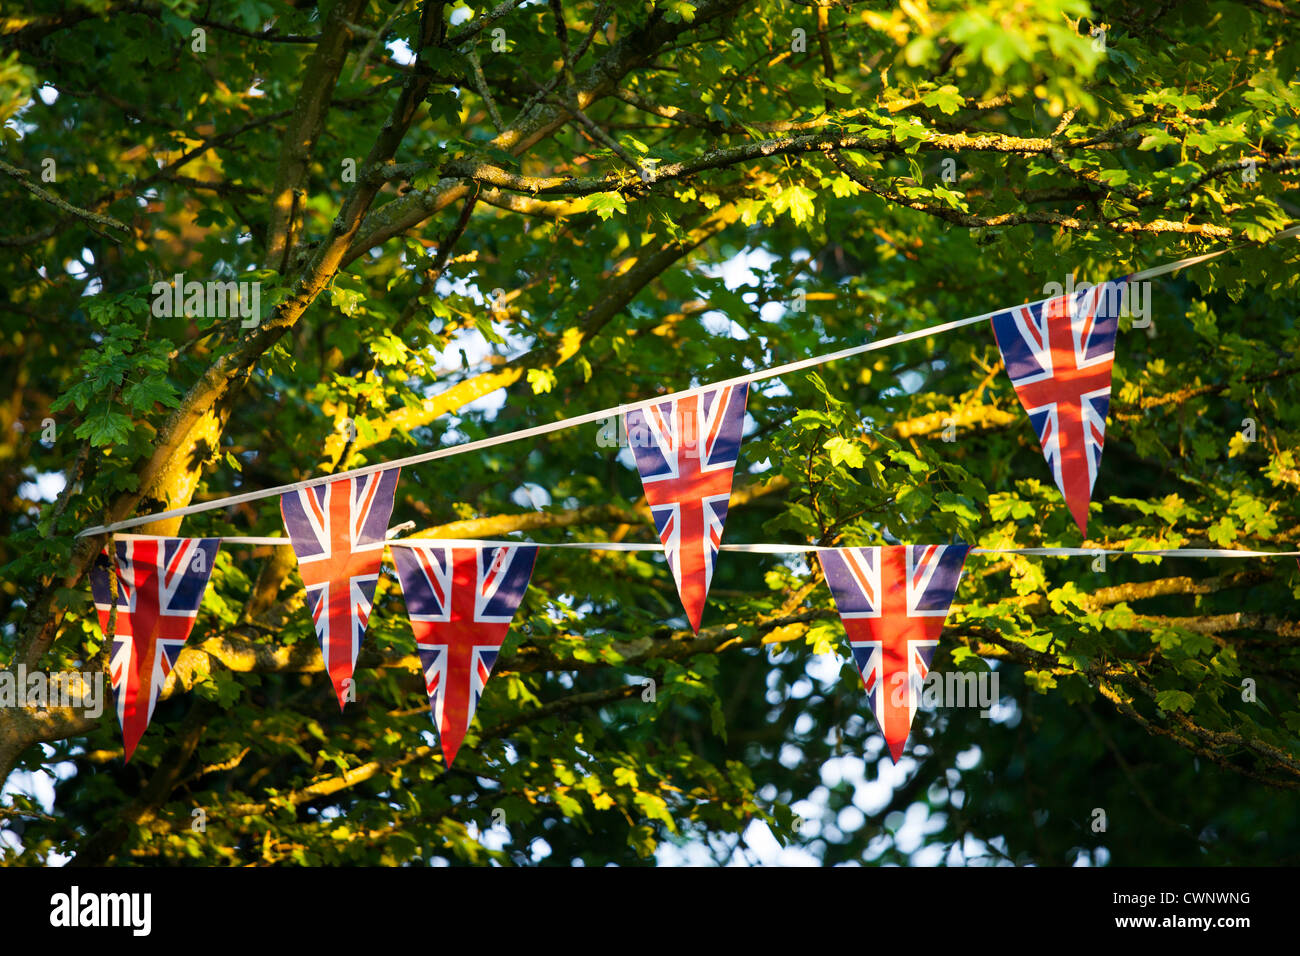 Union Jack flag bunting at street party to celebrate the Queen's Diamond Jubilee in Swinbrook in the Cotswolds, - Stock Image